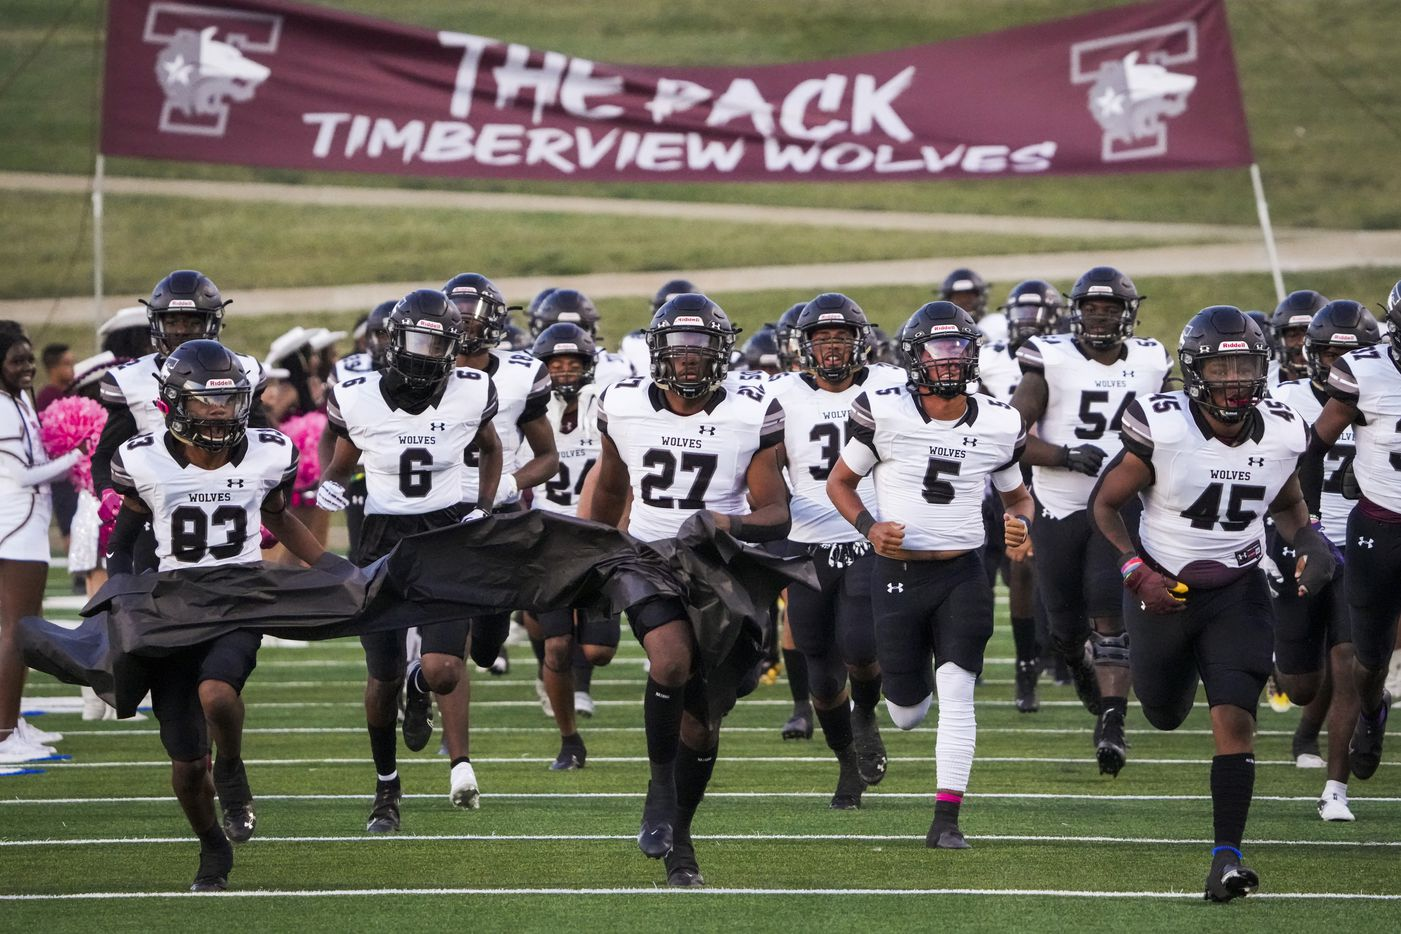 Mansfield Timberview take the field before facing Waco University in a high school football game at Waco ISD Stadium on Friday, Oct. 8, 2021, in Waco, Texas.